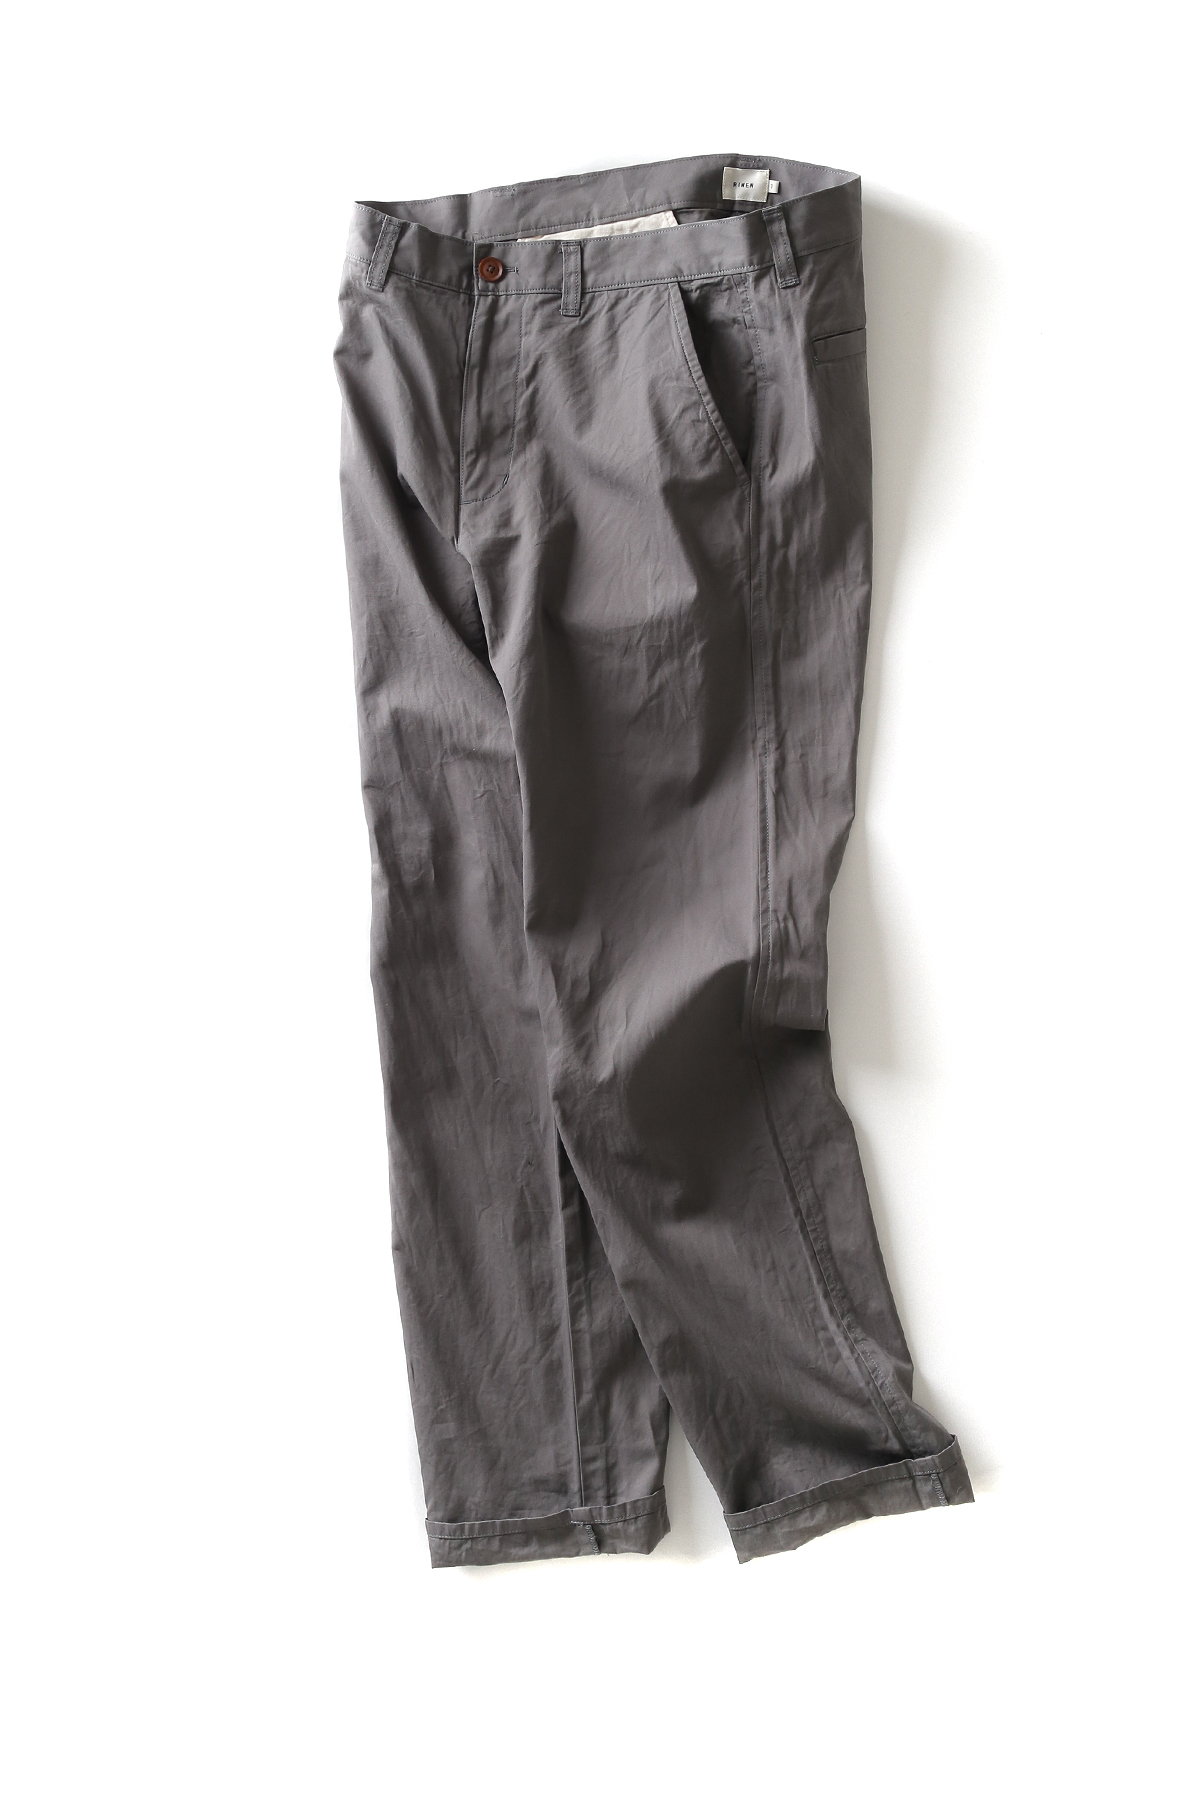 RINEN : Standard Pants (Grey)